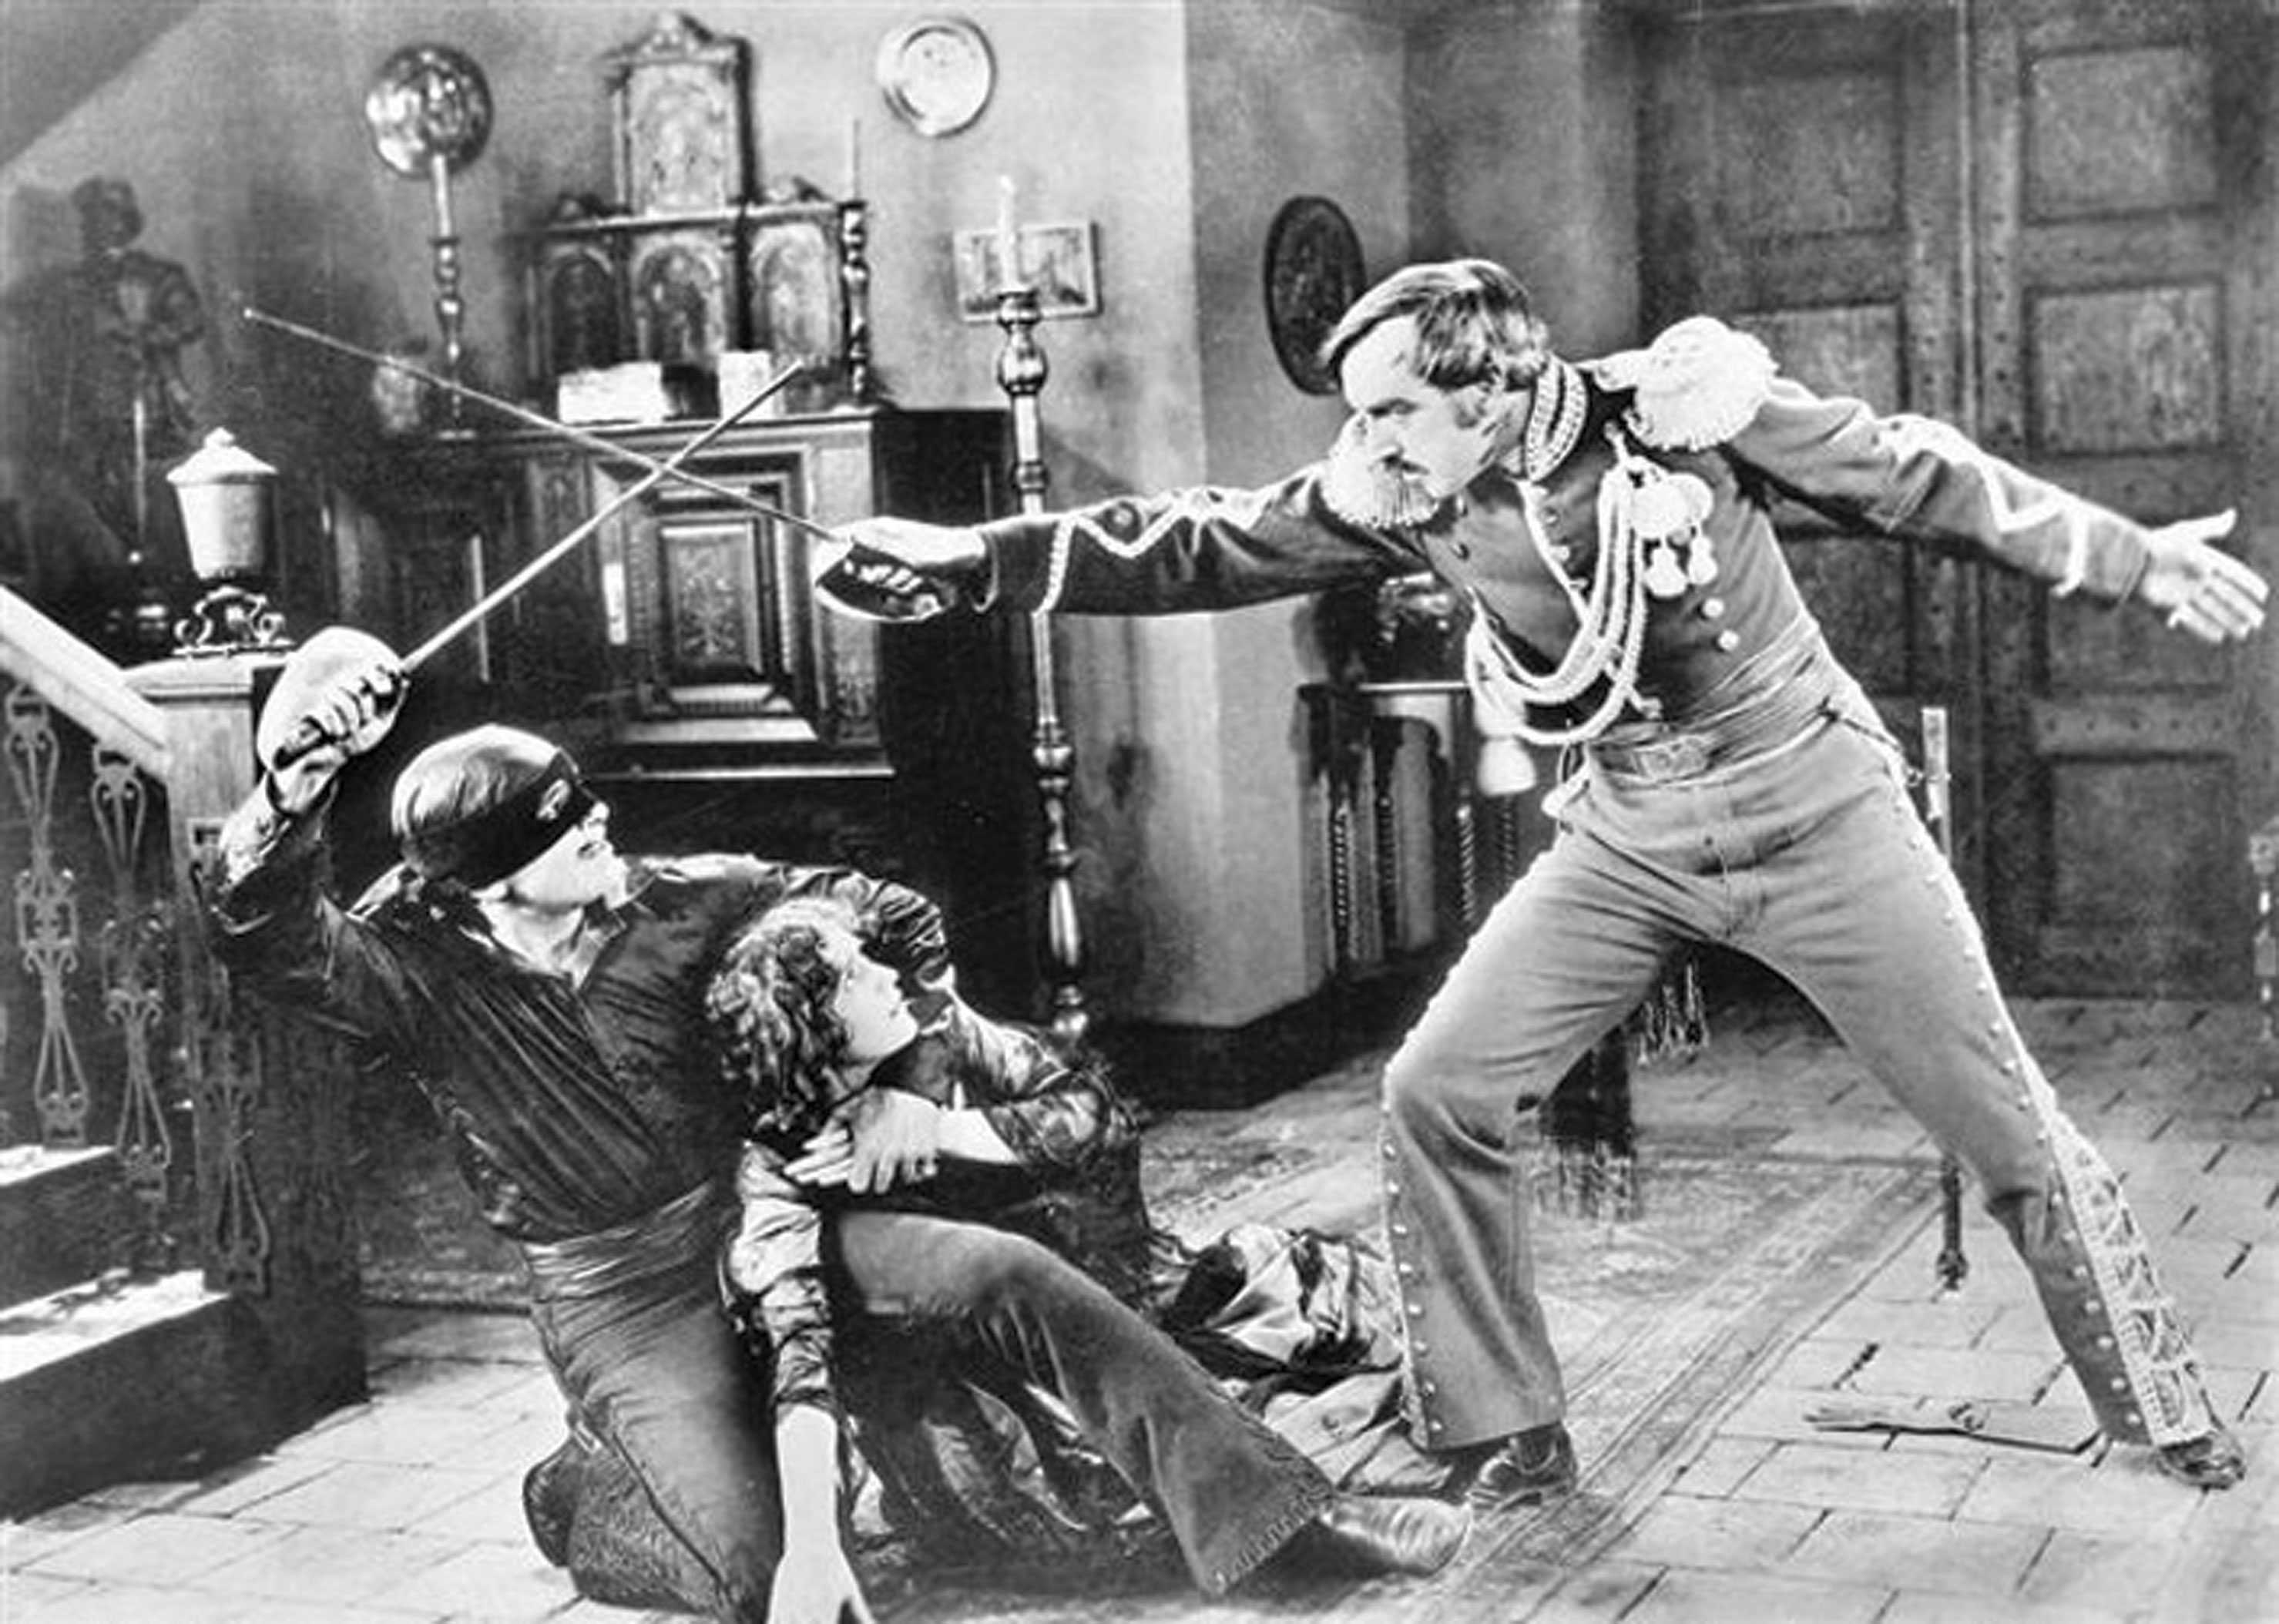 """Actors do battle in a still from the film """"The Mask of Zorro."""" 